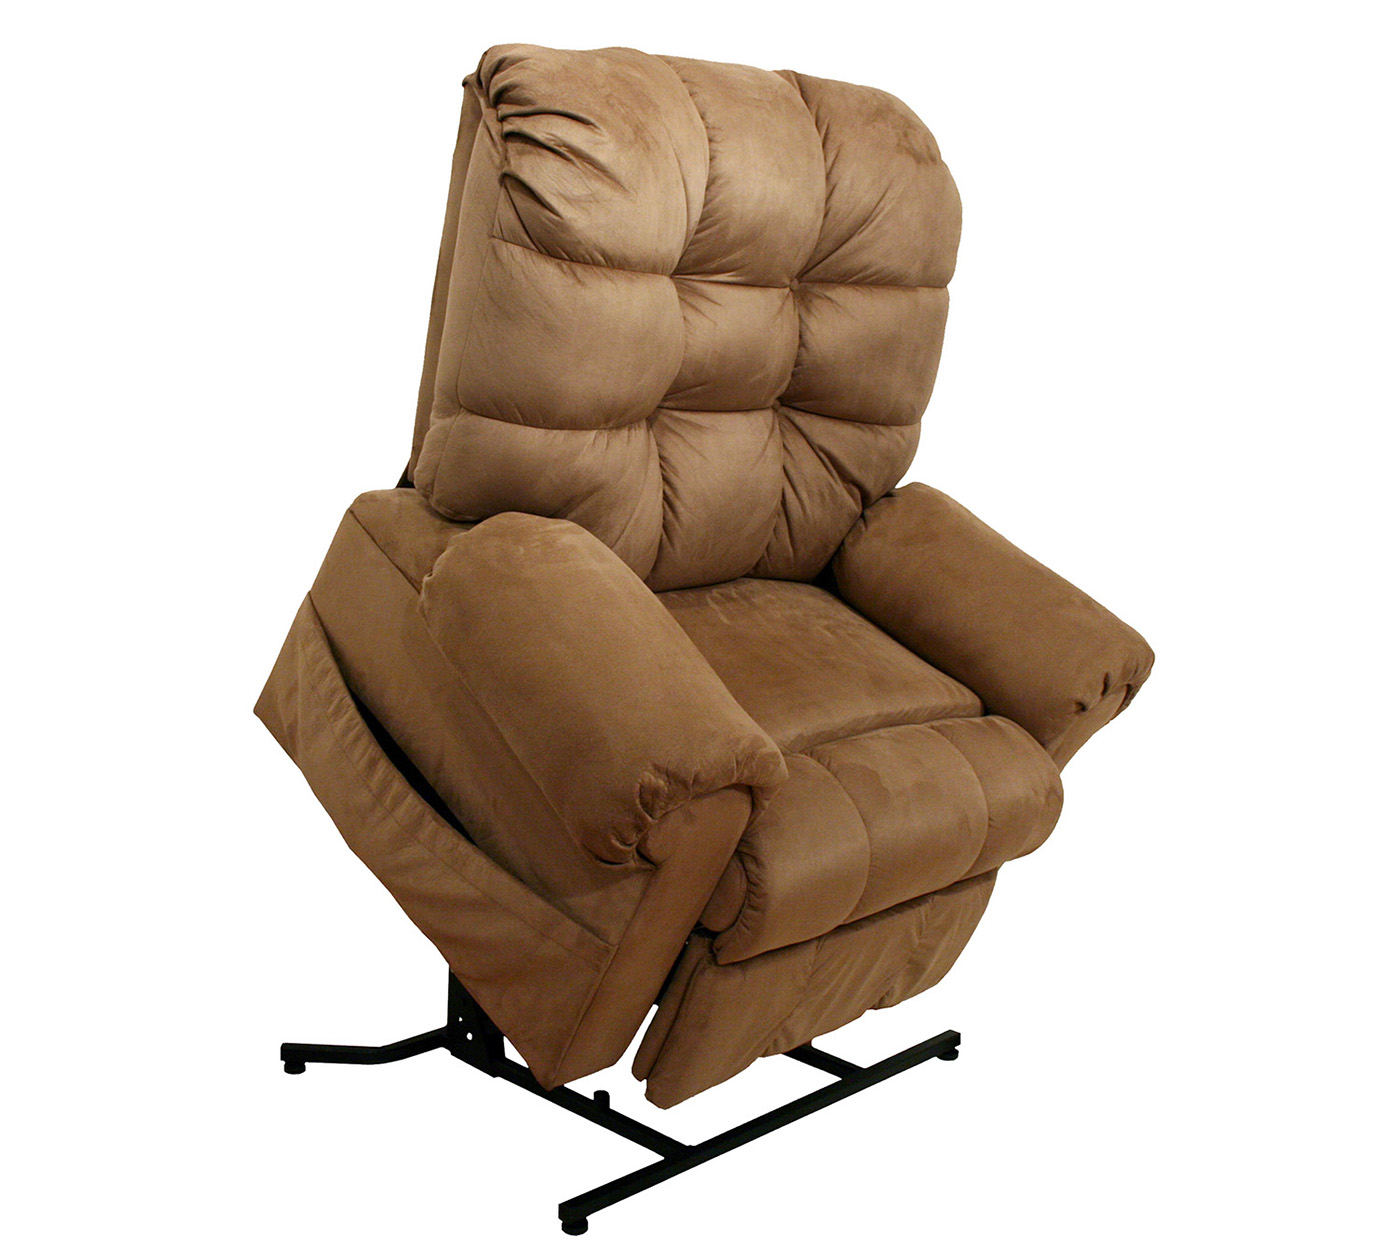 Recliners At Big Lots | Catnapper Recliners | Macys Chairs Exciting  Catnapper Recliners for Living Room Ideas